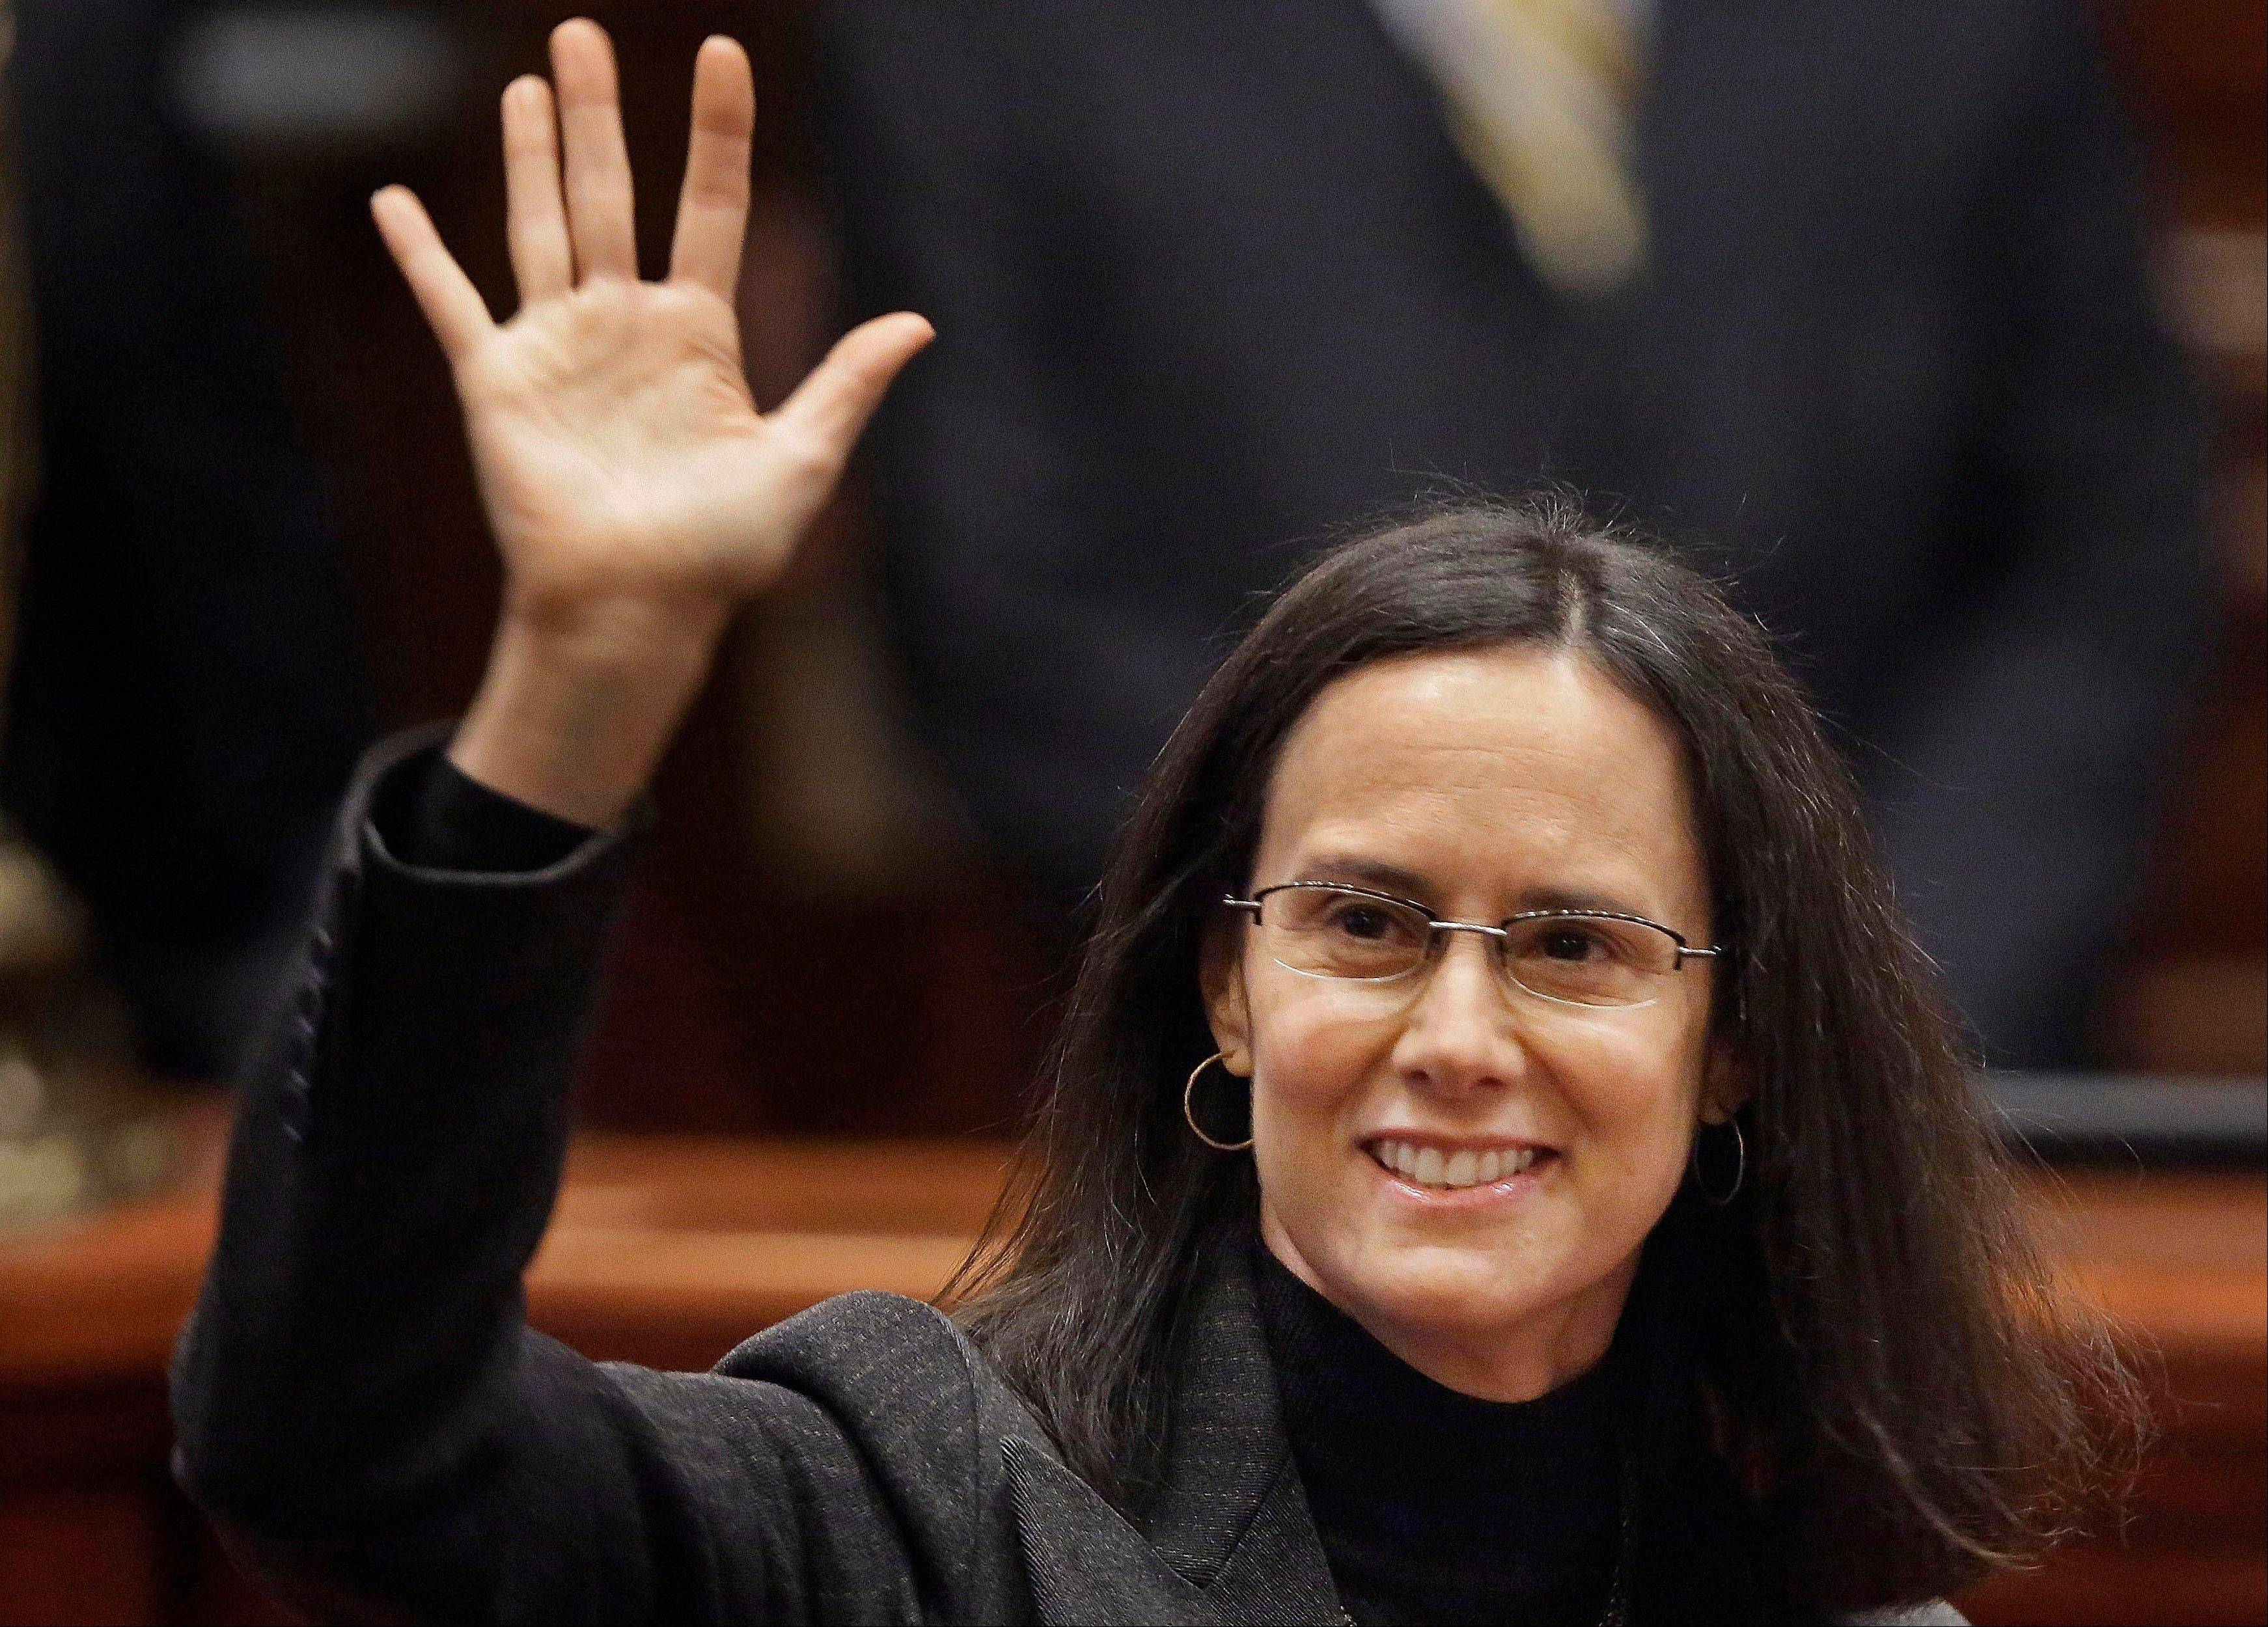 Illinois Attorney General Lisa Madigan said Monday that she will seek re-election rather than run for governor.